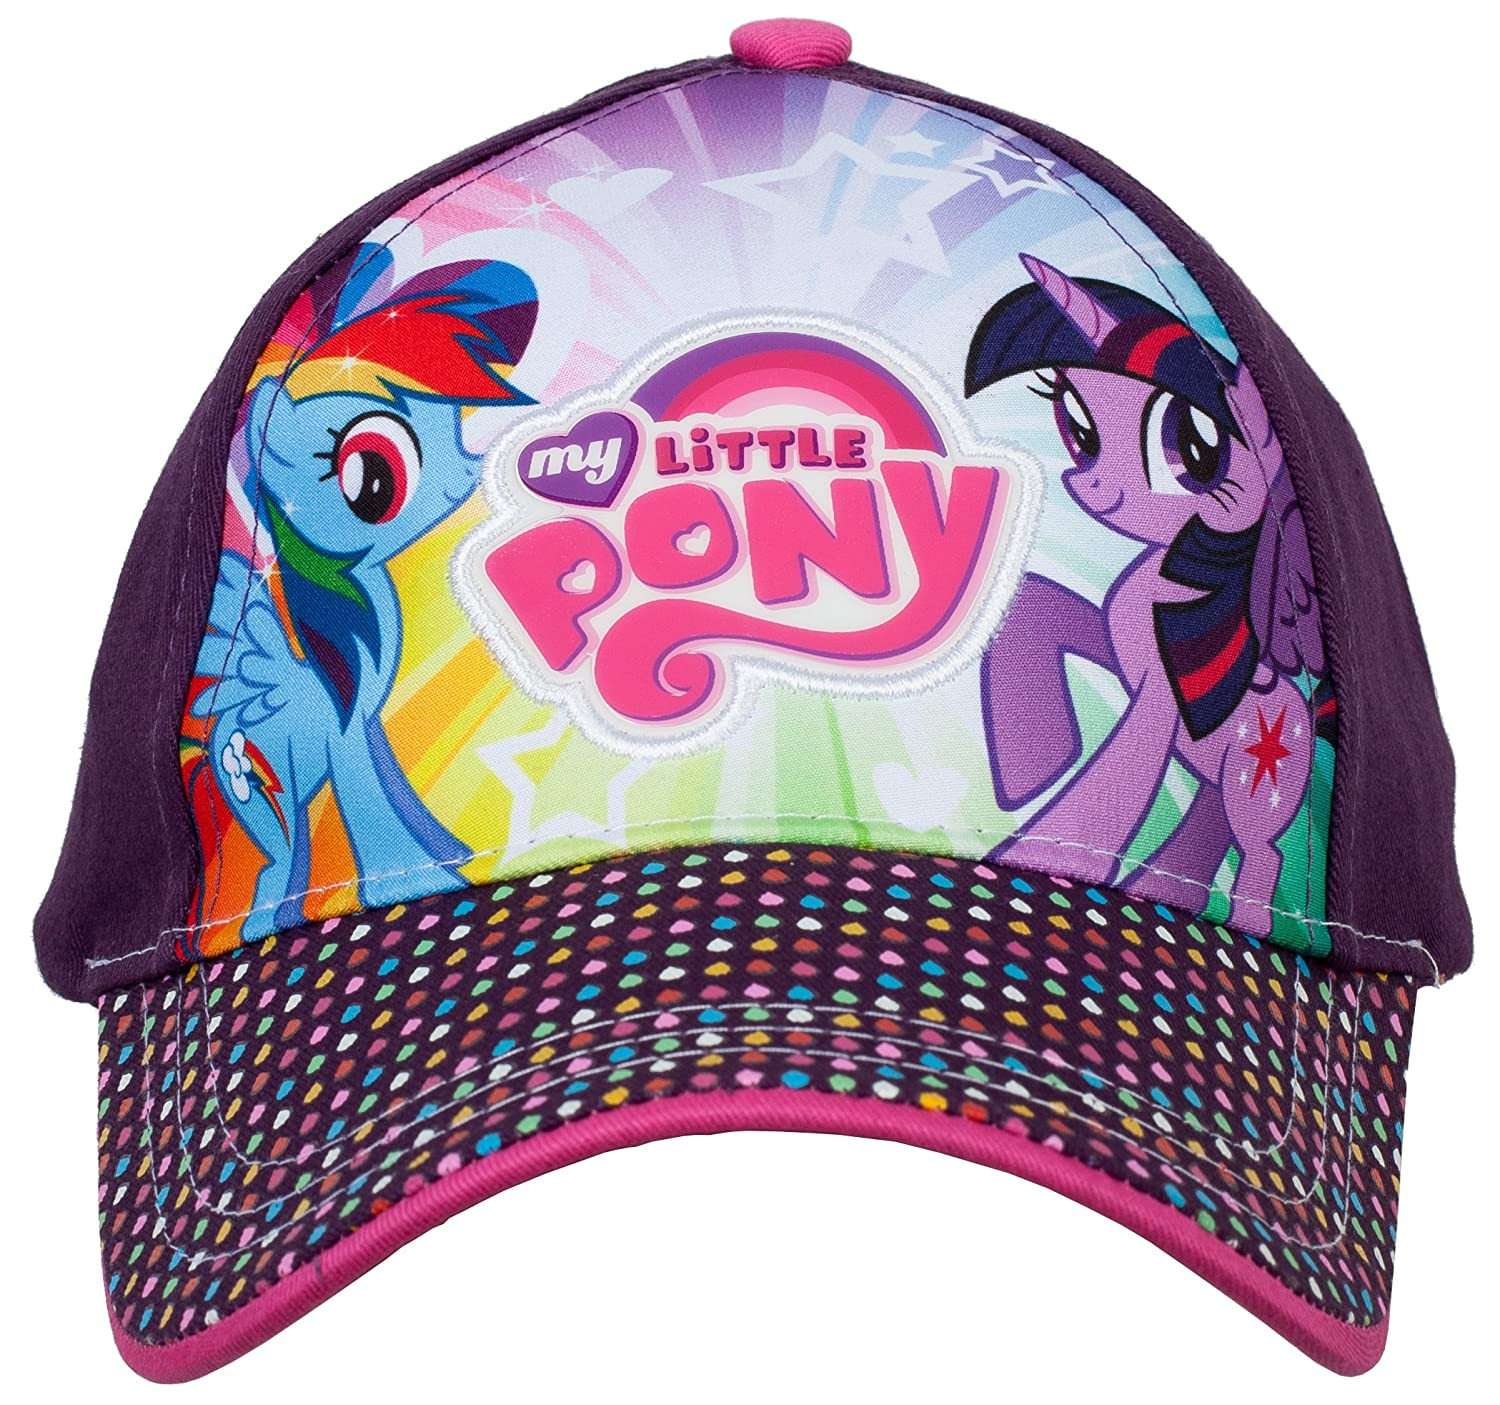 Hasbro Twilight Sparkle and Rainbow Dash My Little Pony Baseball Cap, 3-6 Years